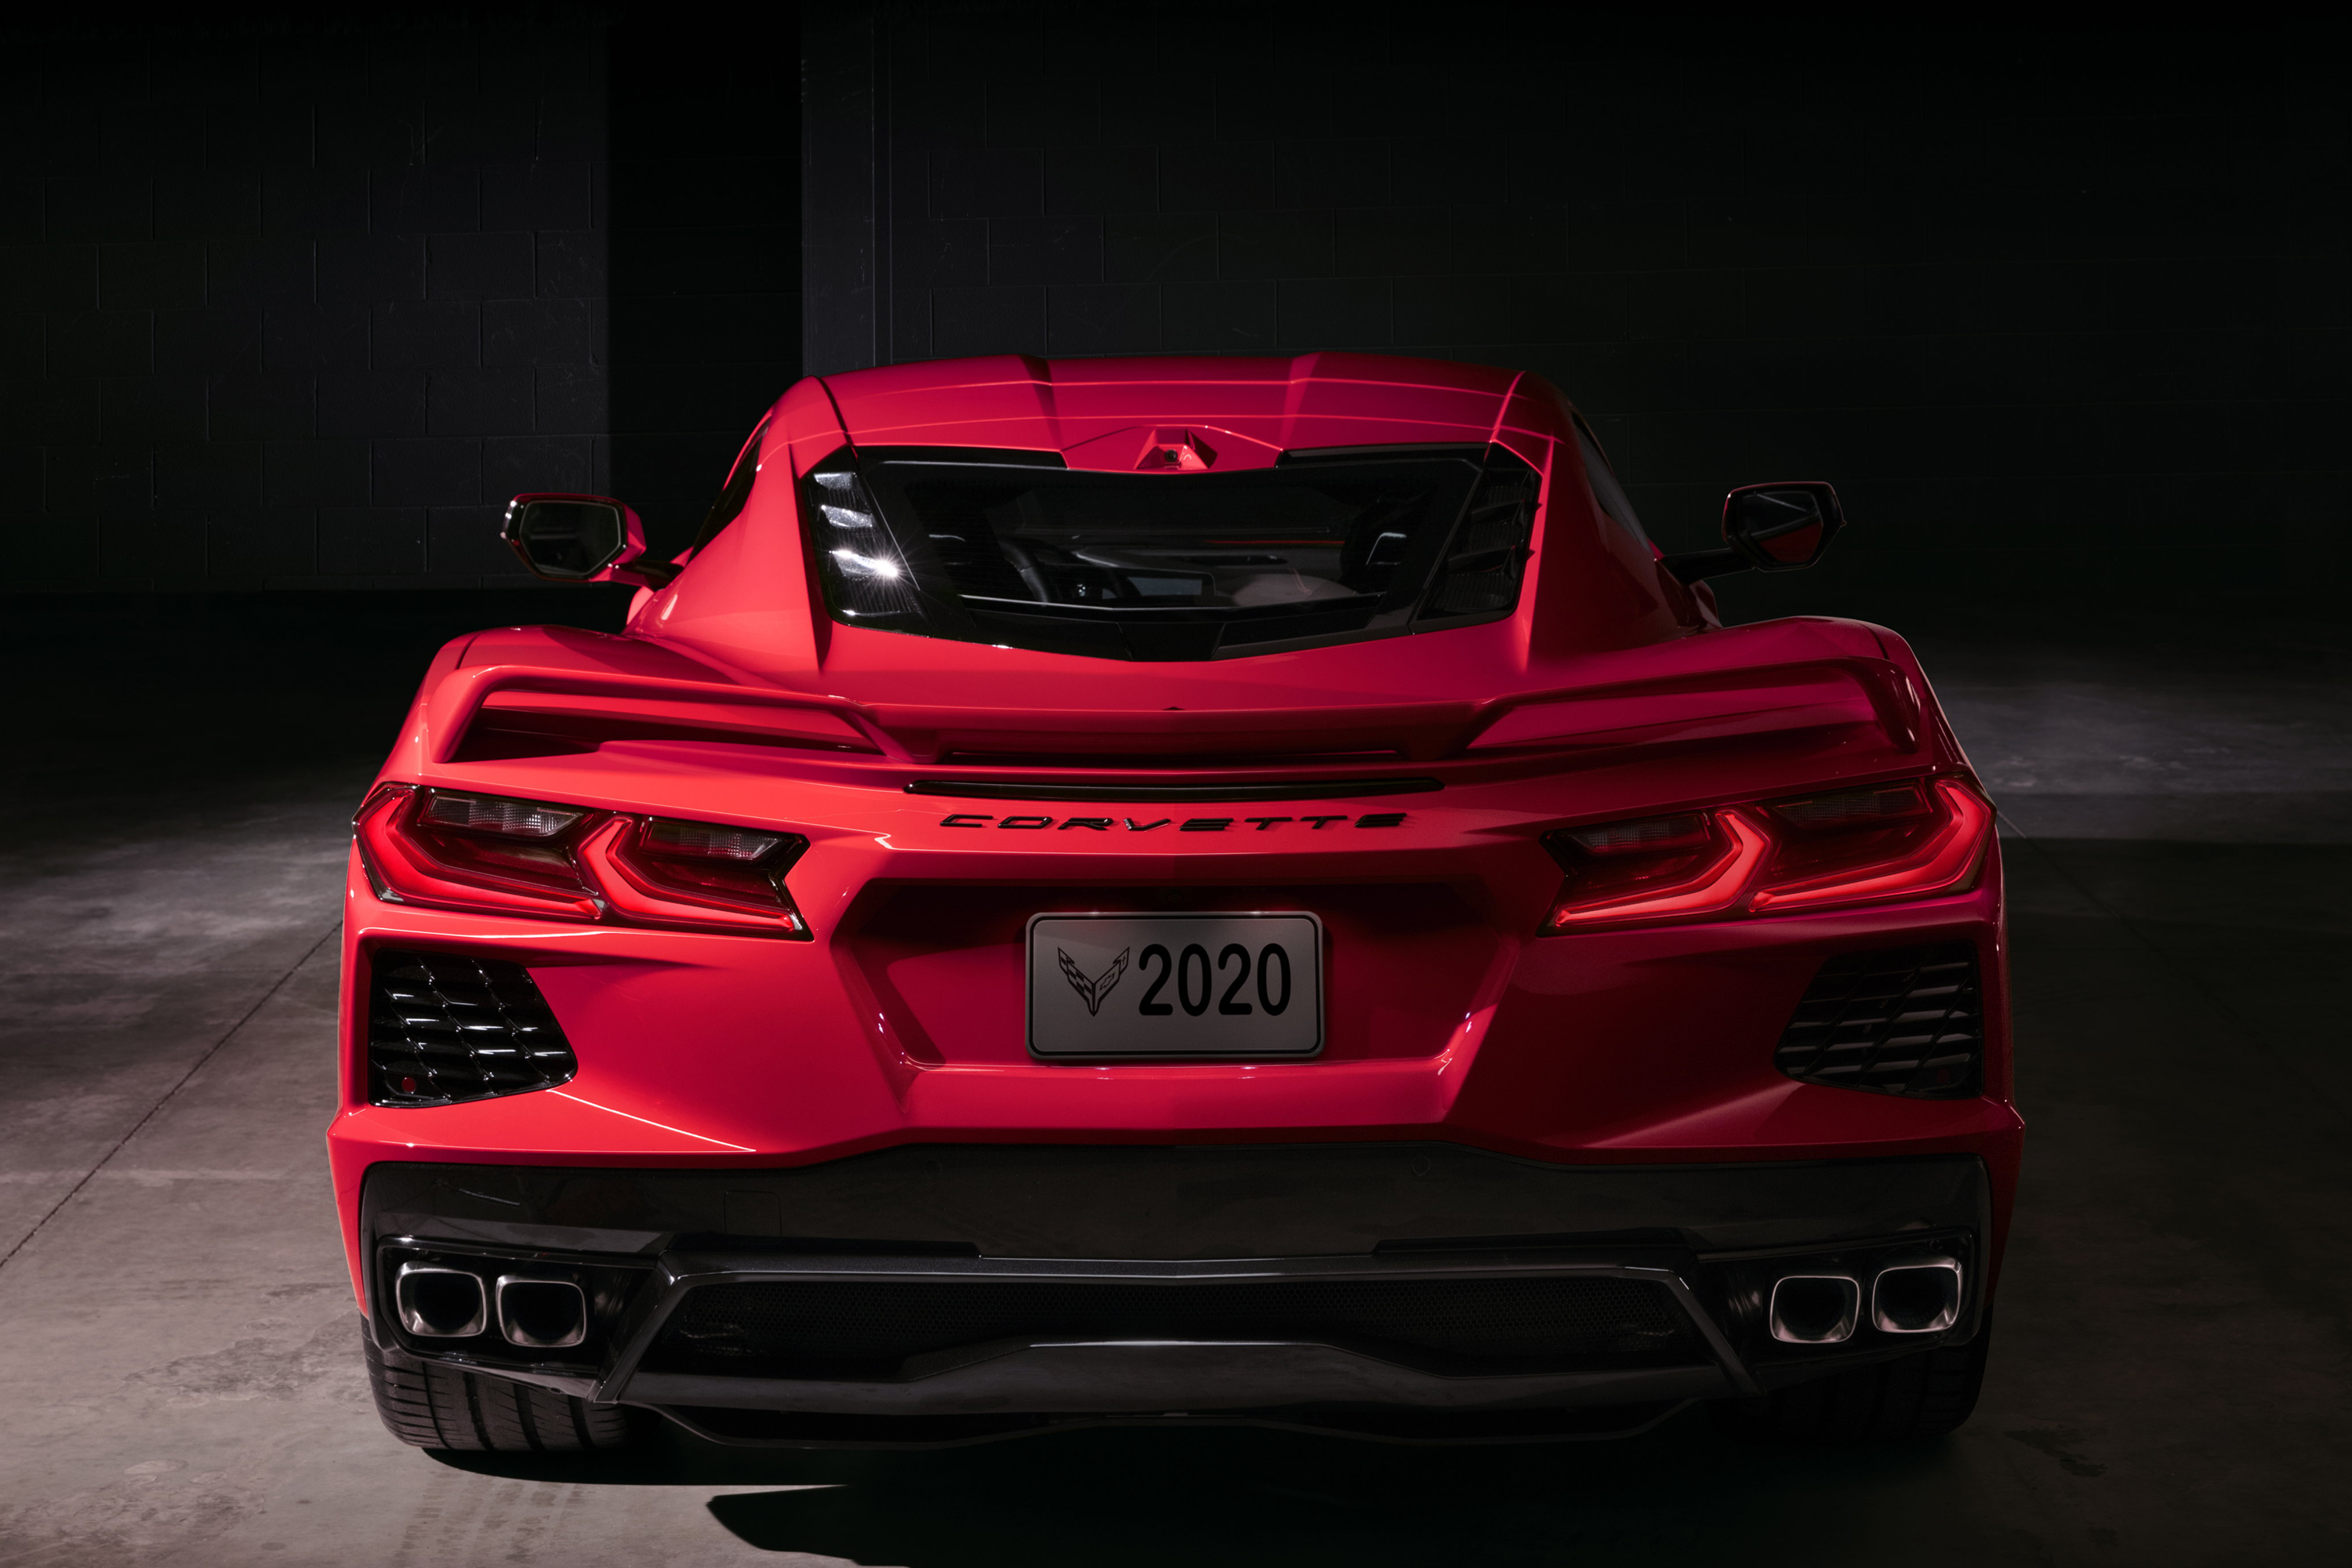 The 2020 Corvette Stingray Redefines a Classic | GearJunkie